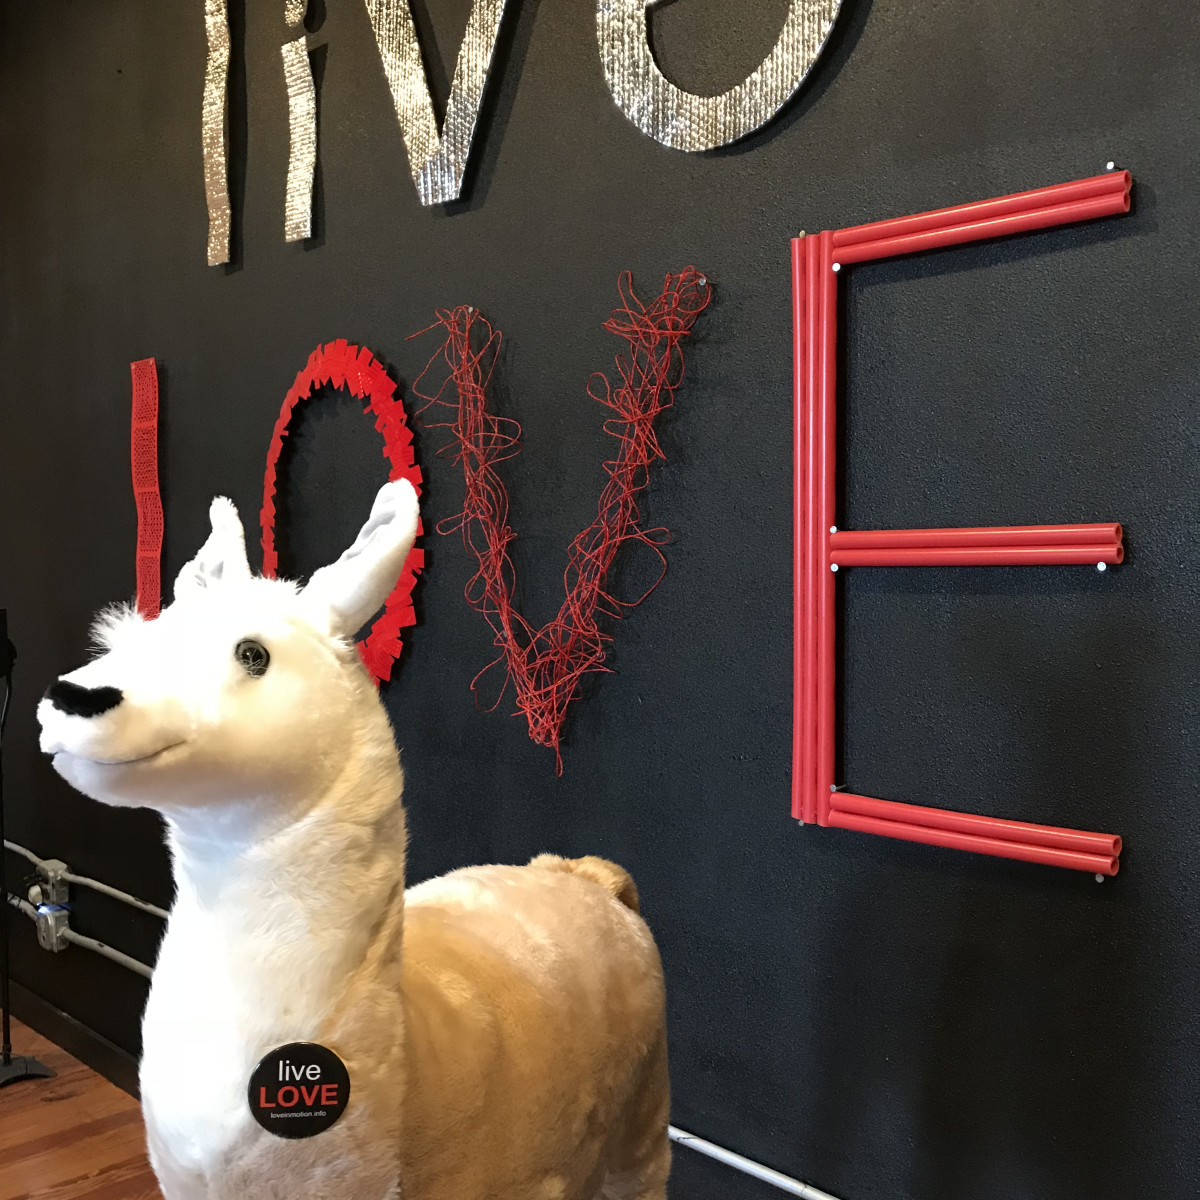 Love in Motion Lola the llama